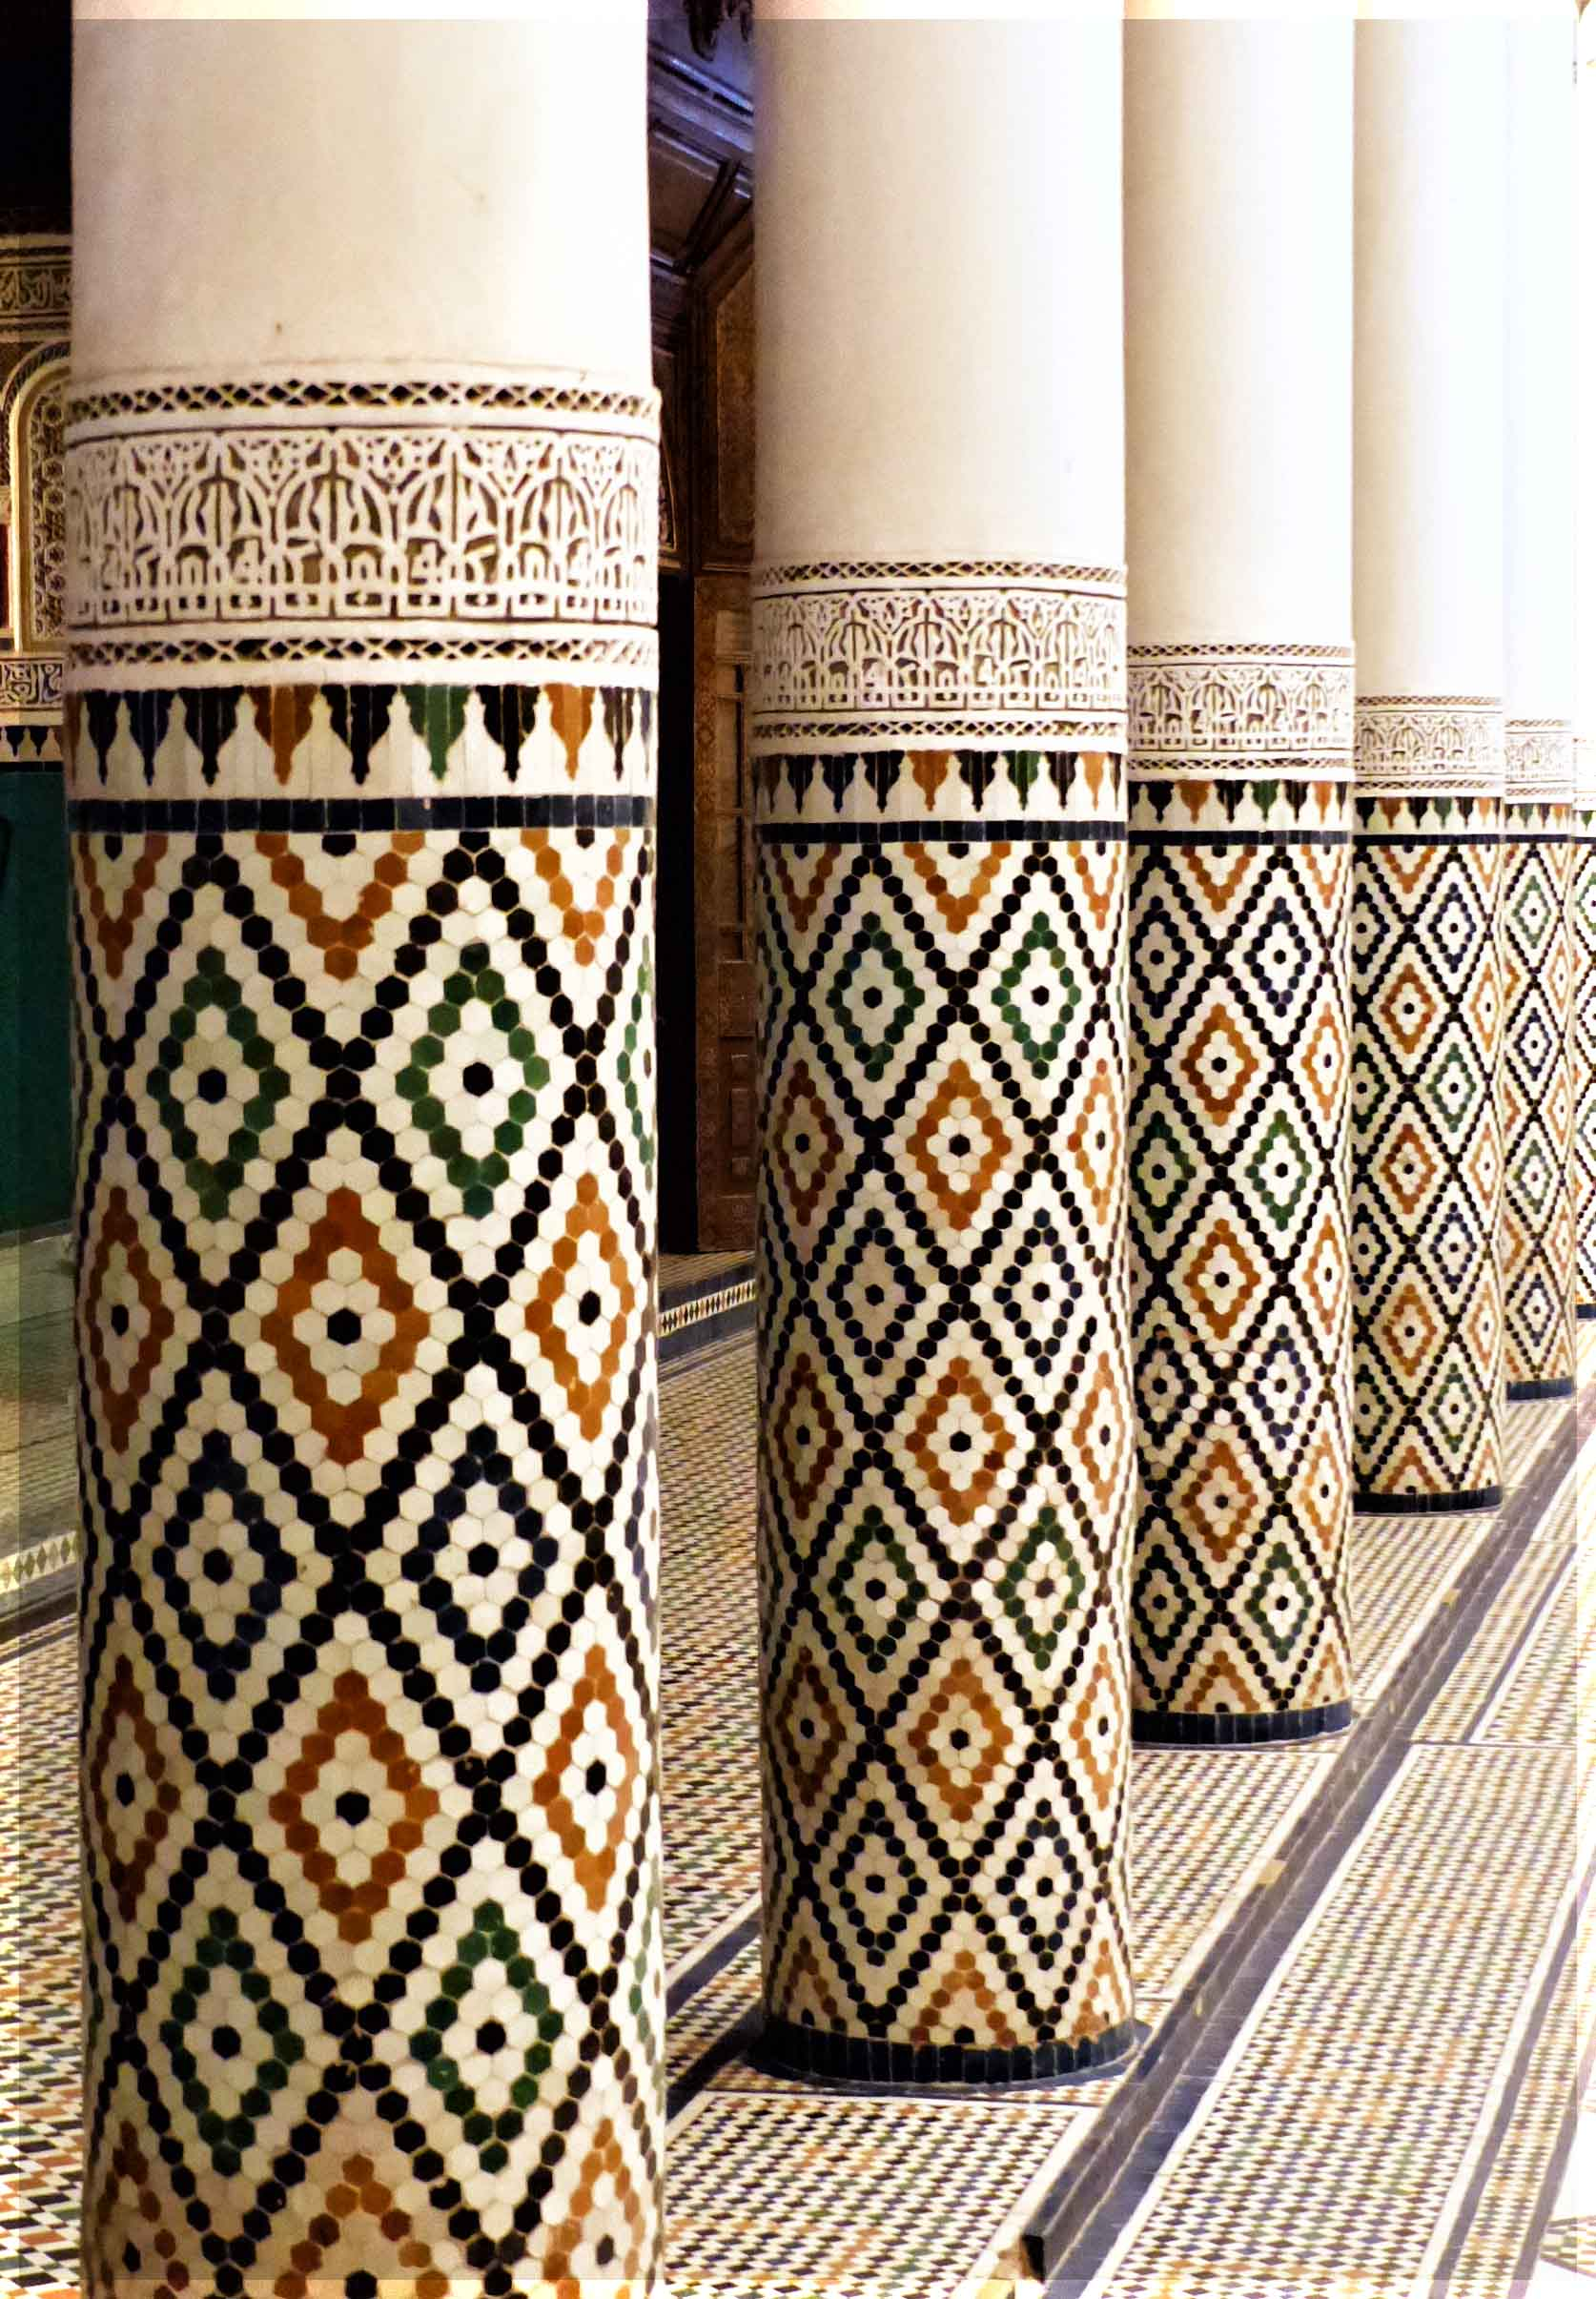 Round columns decorated with small tan, white and dark green tiles